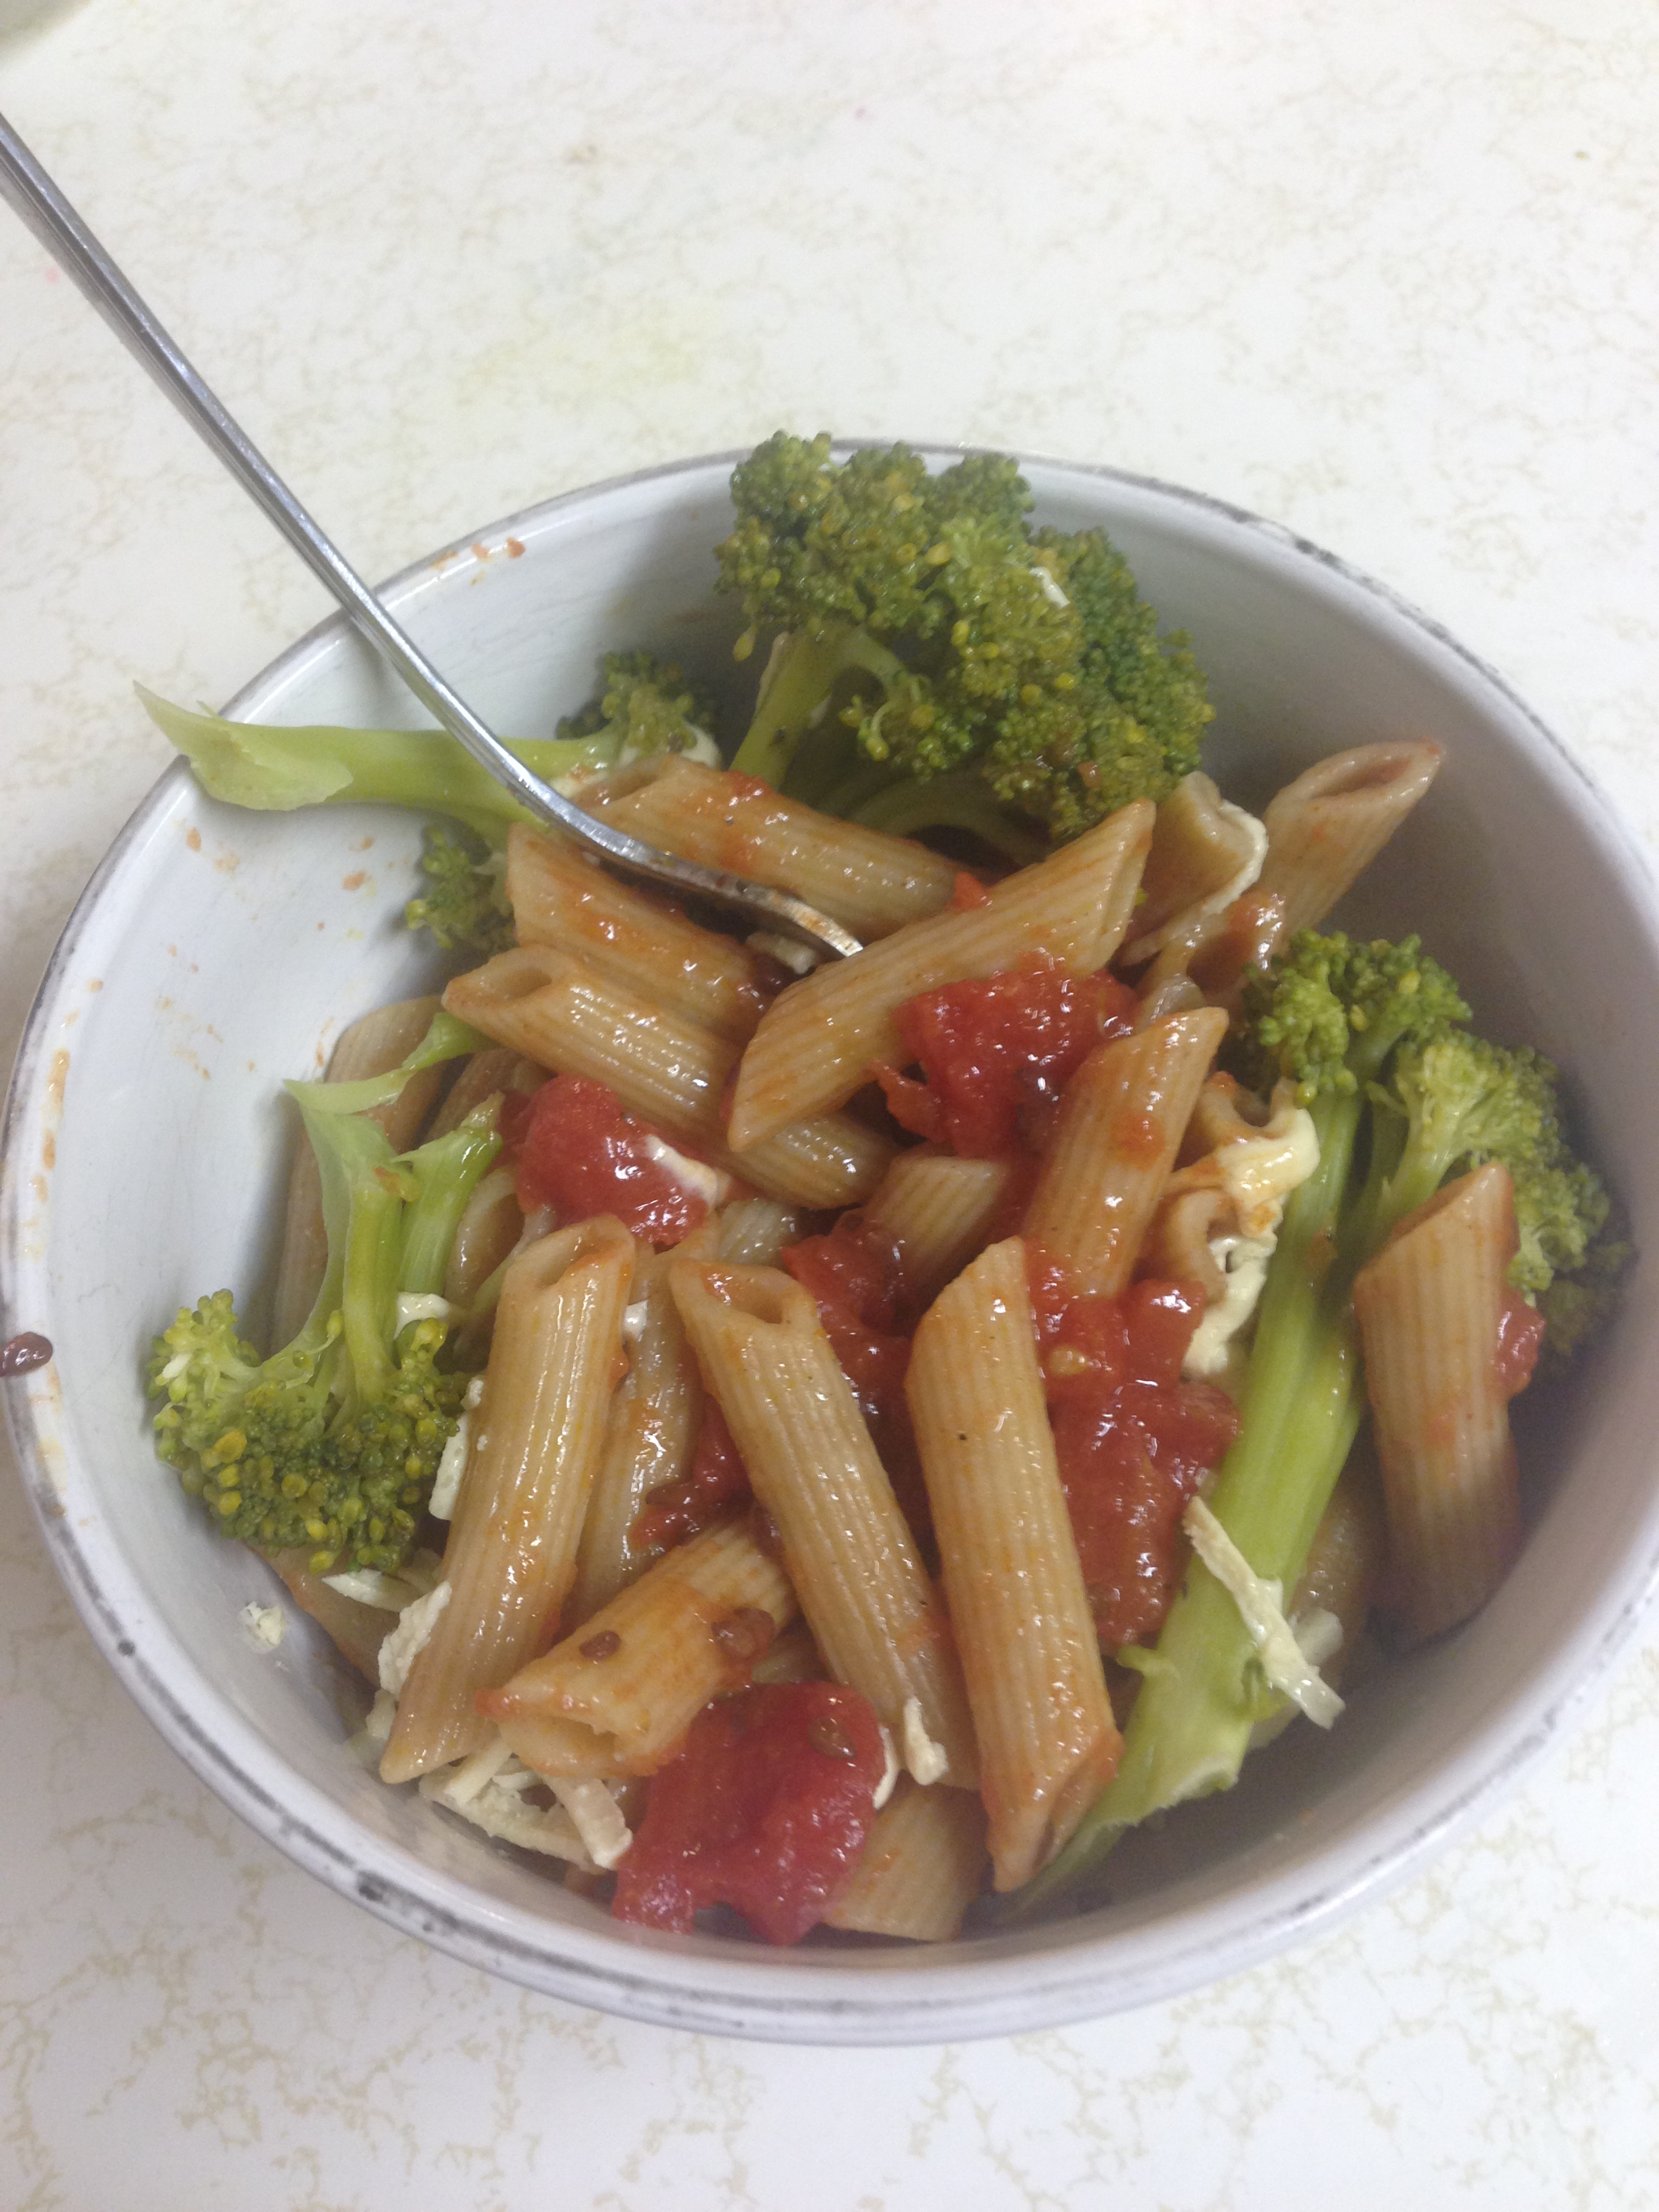 ... Pasta With Broccoli, Tomatoes And Pine Nuts Topped With Vegan Cheese